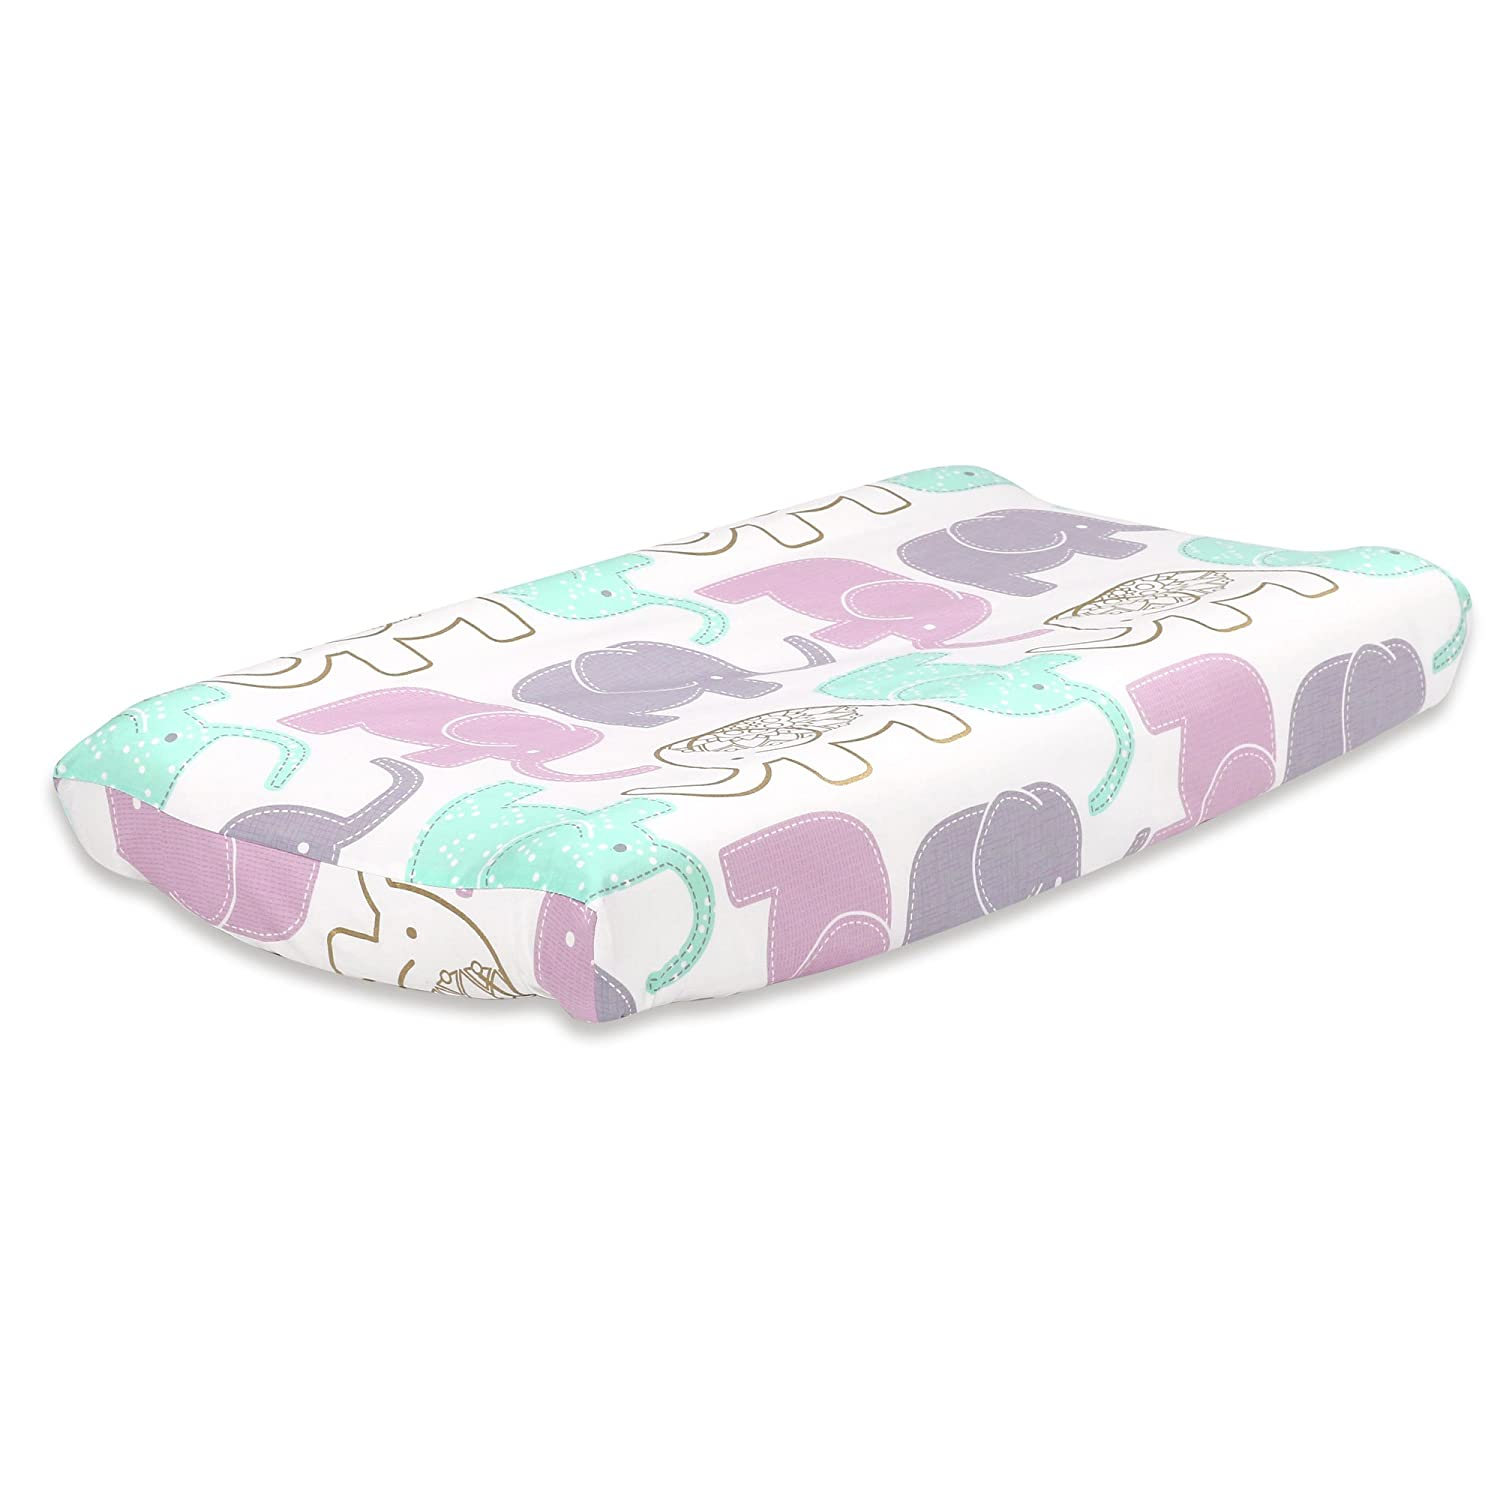 Grey Elephant Print Cotton Changing Pad Cover by The Peanut Shell Farallon Brands CPCELGY